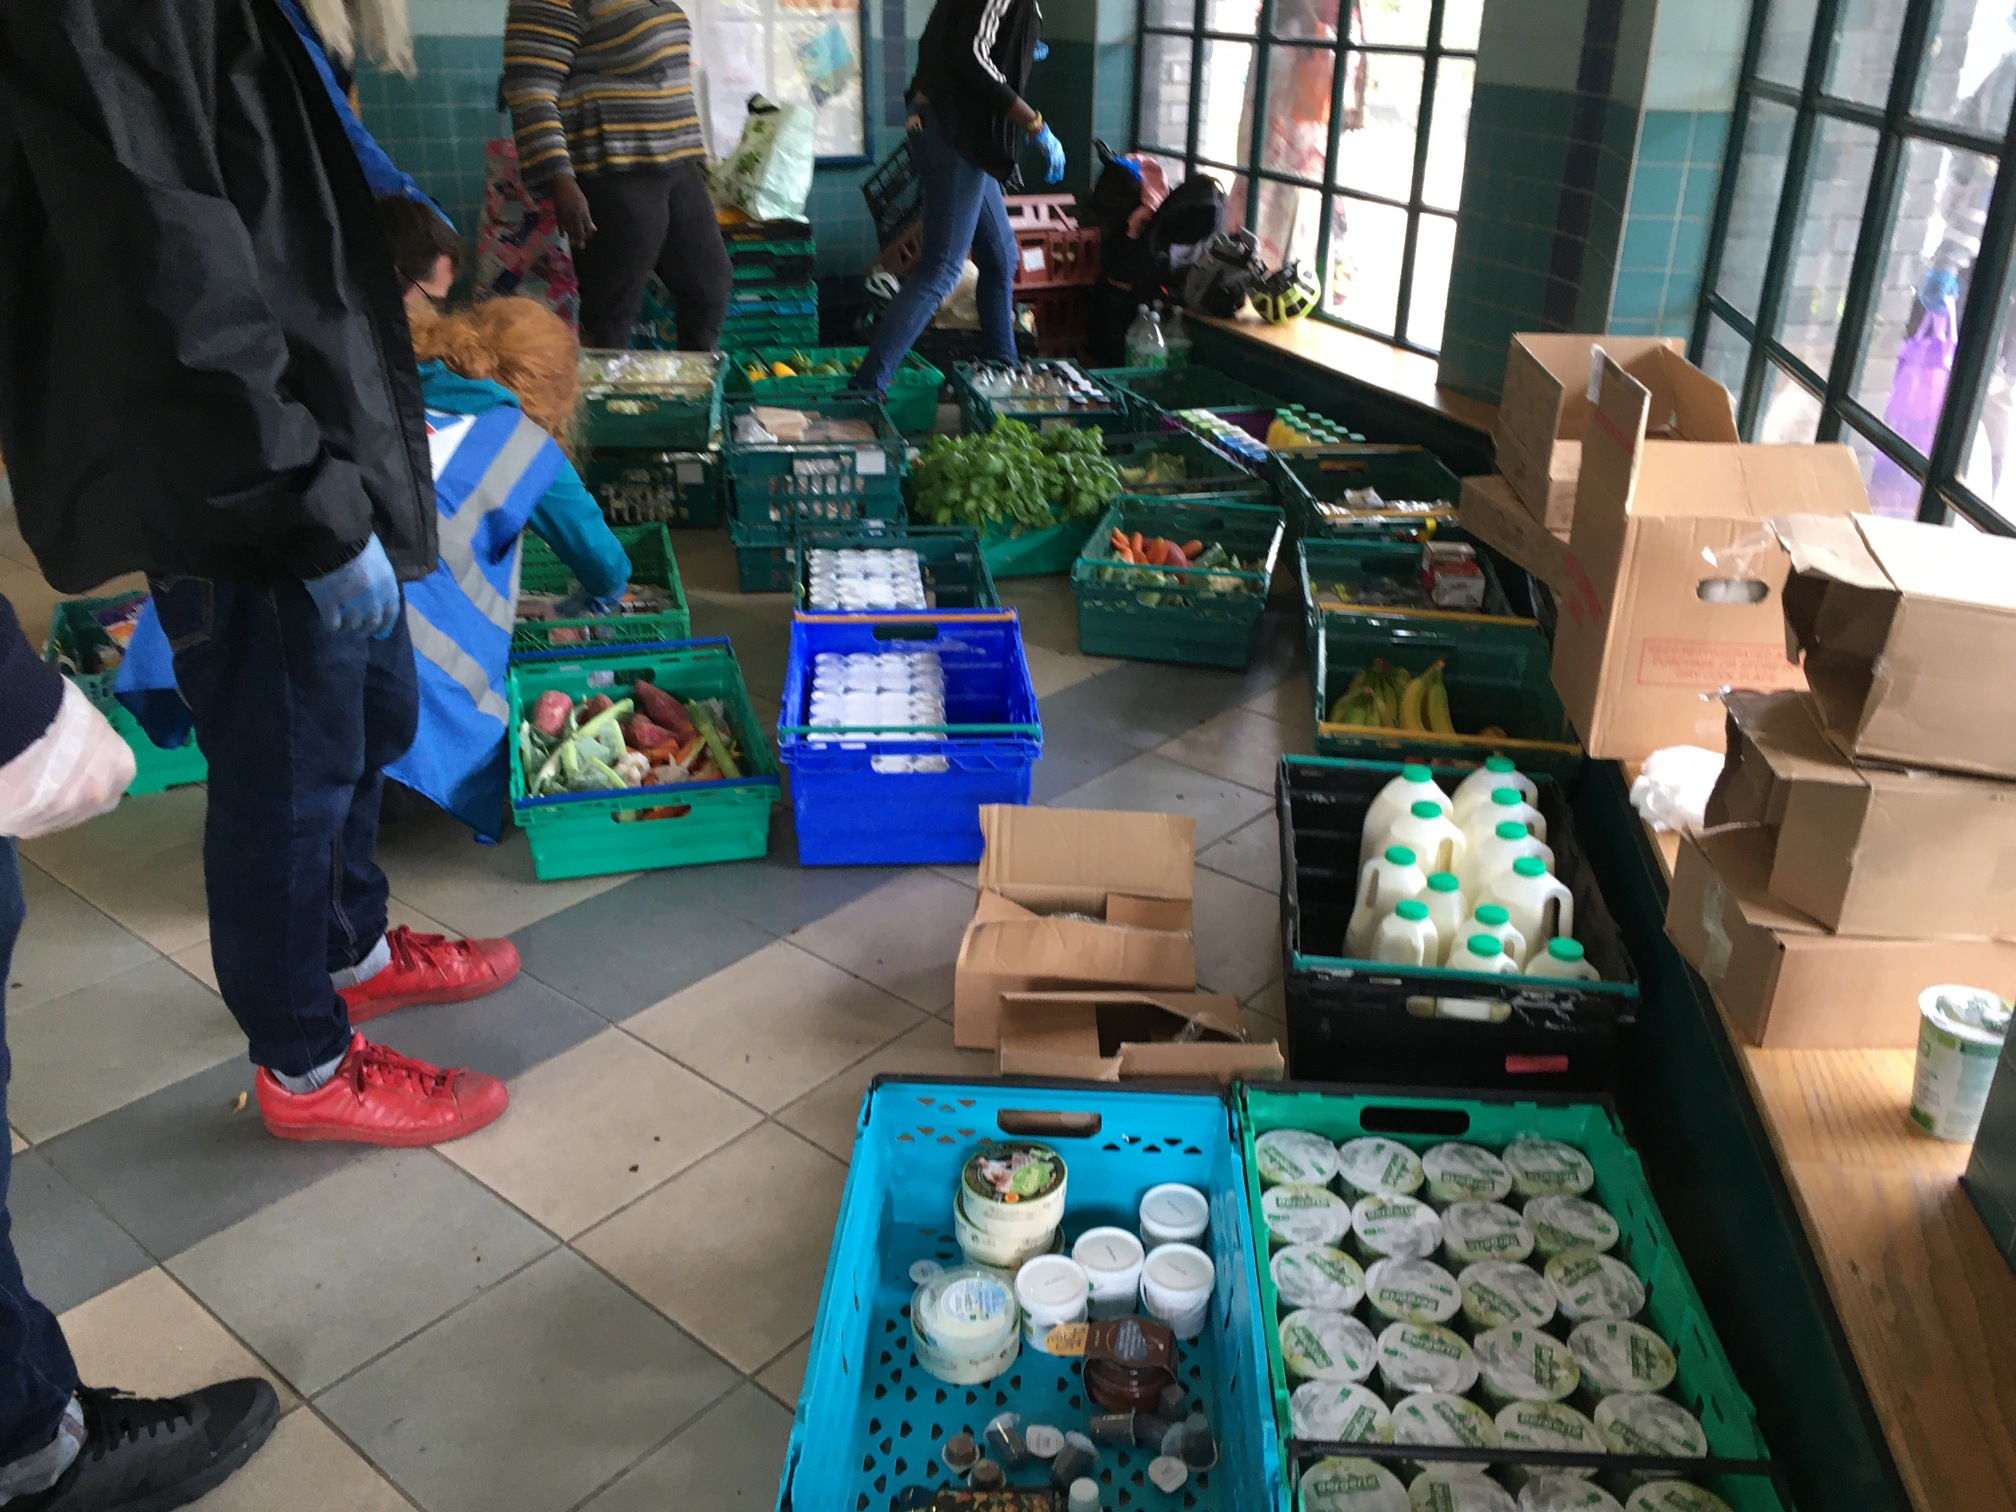 Food in crates ready to be distributed